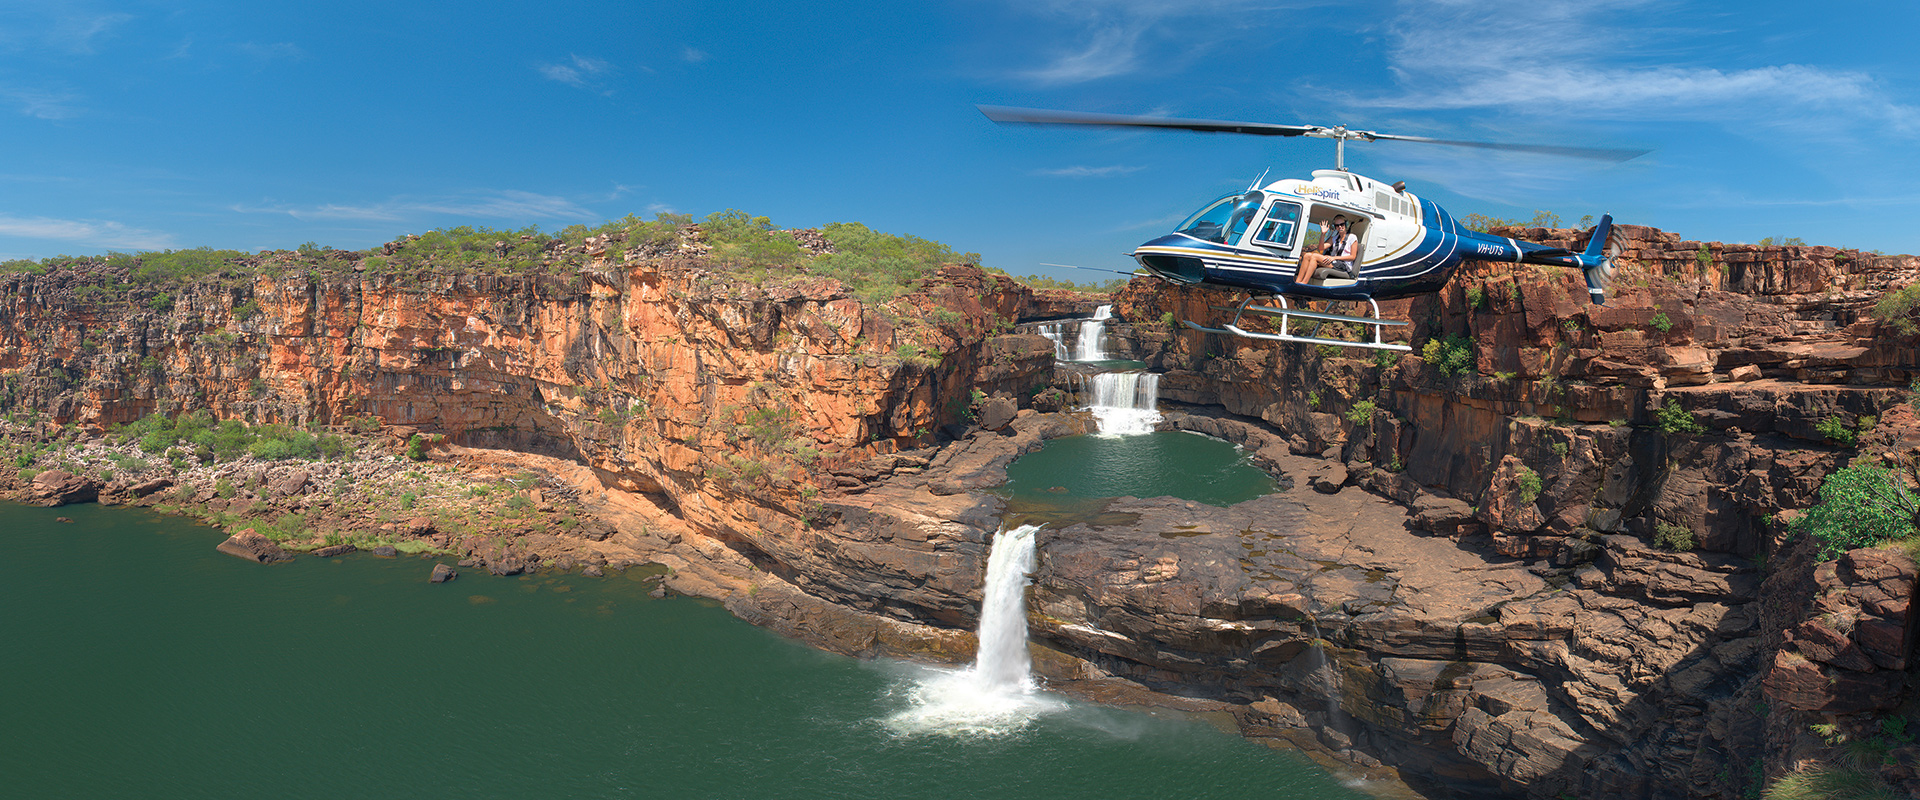 Air tour over Mitchell Falls